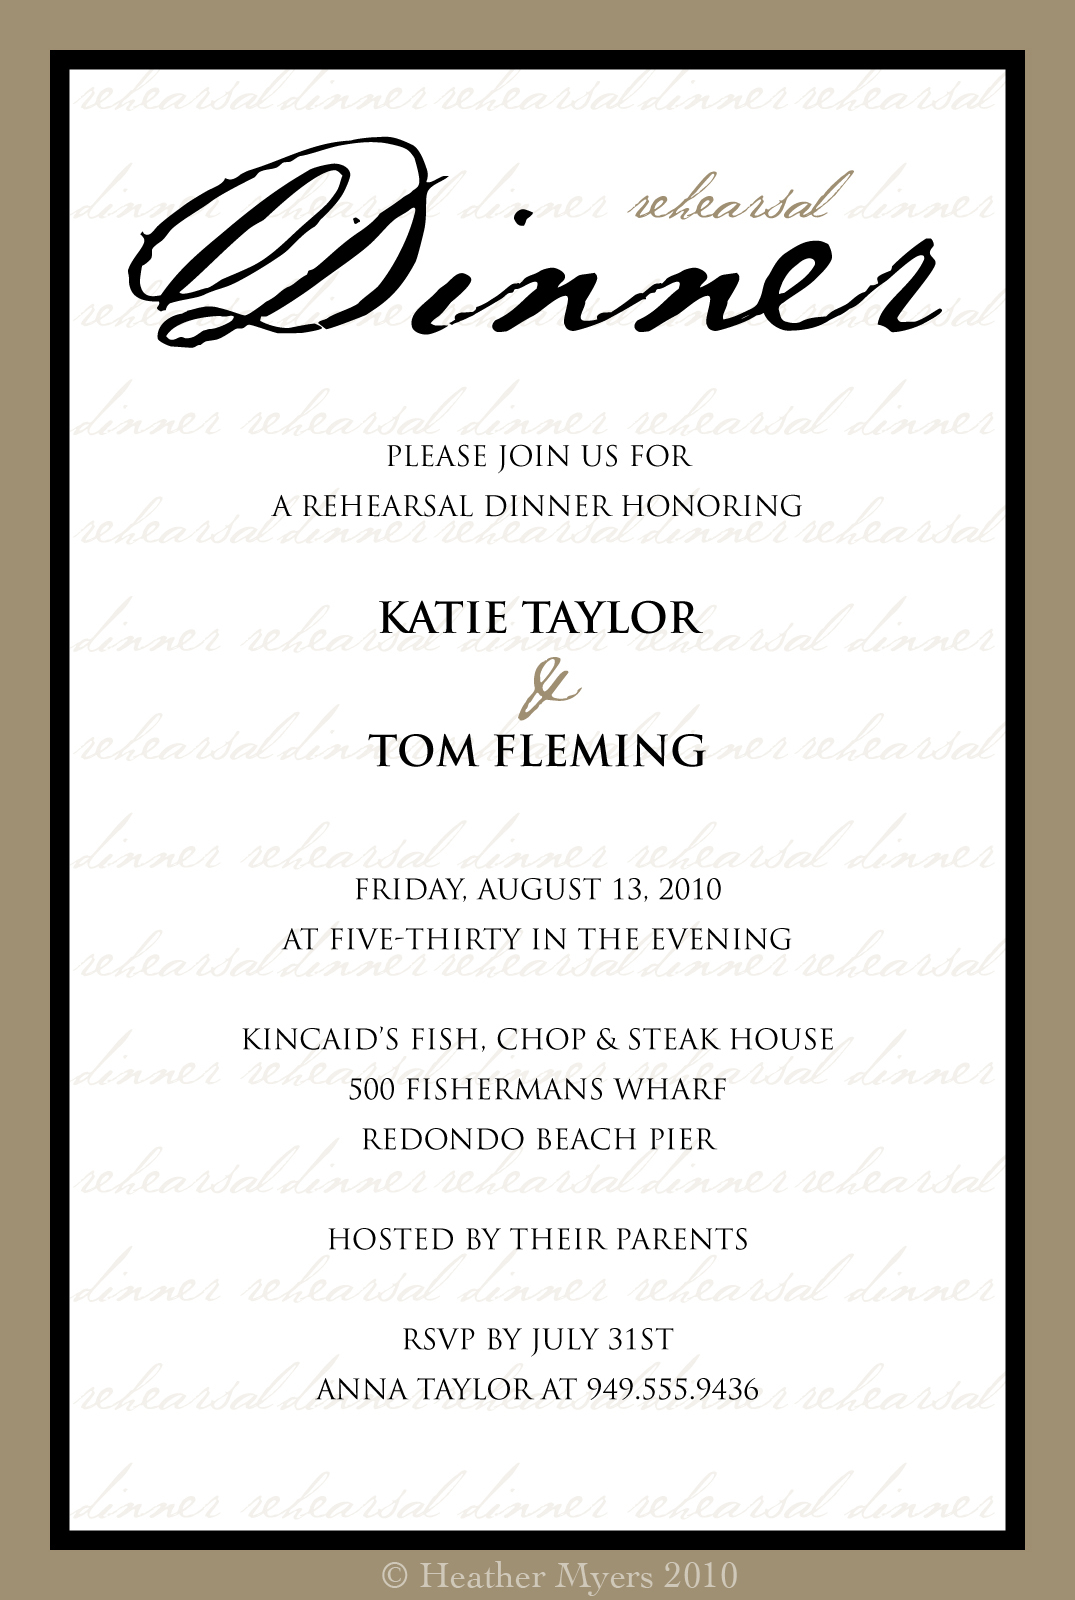 Dinner Invitations Template dinner party invitation template – Dinner Invitation Templates Free